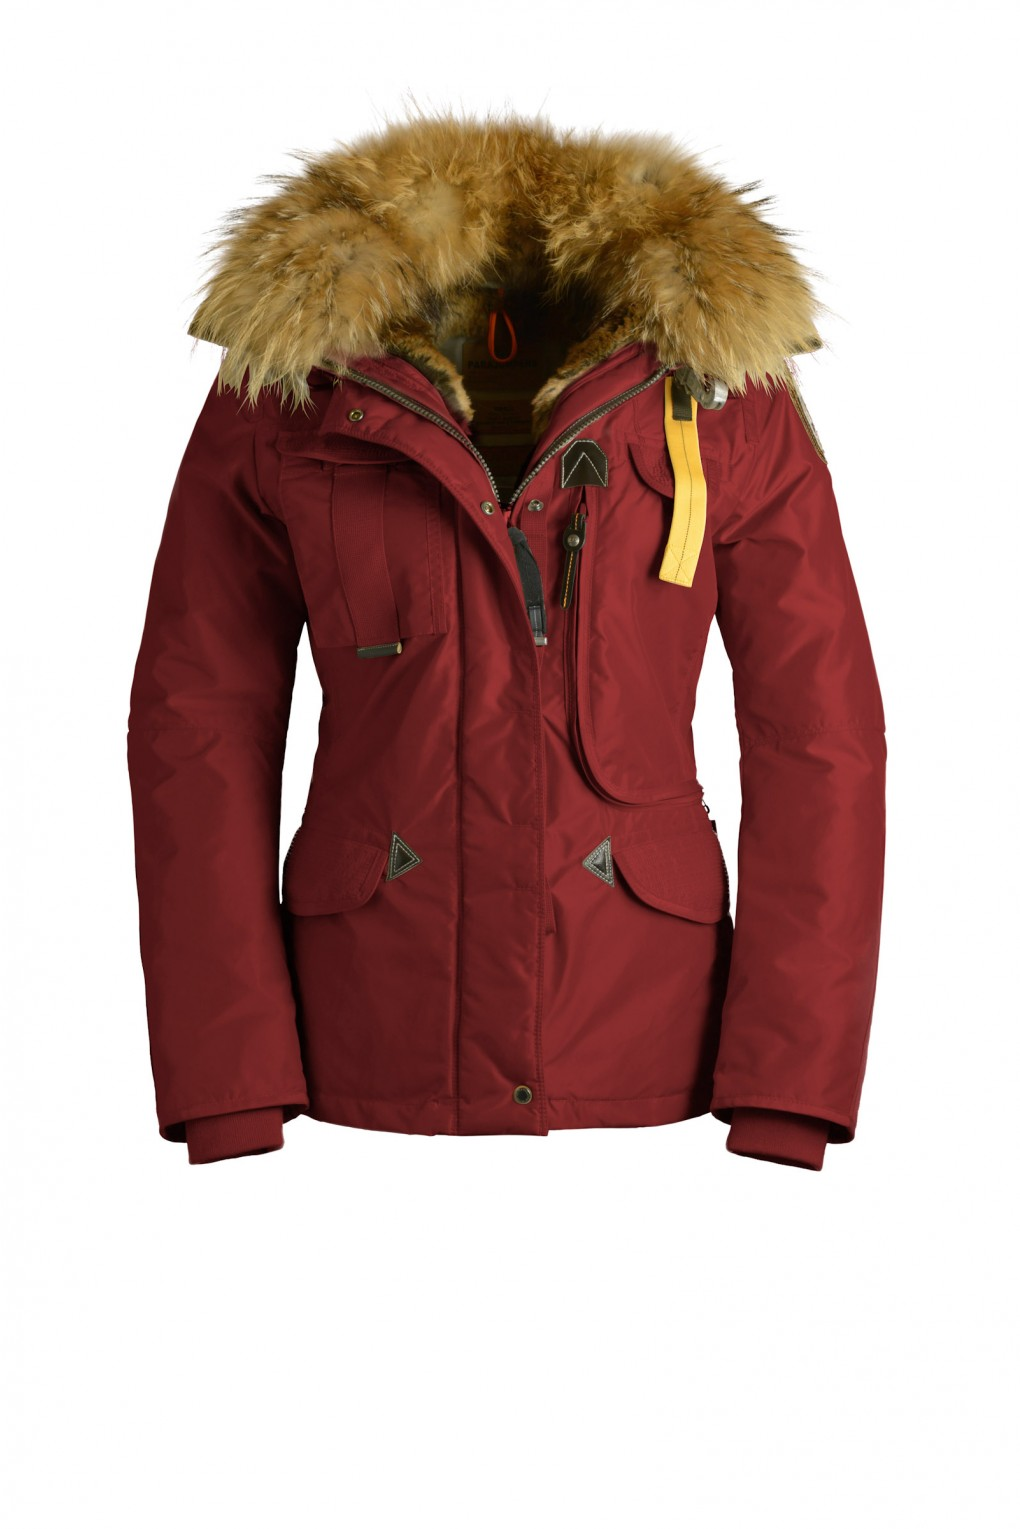 parajumpers DENALI woman outerwear Red